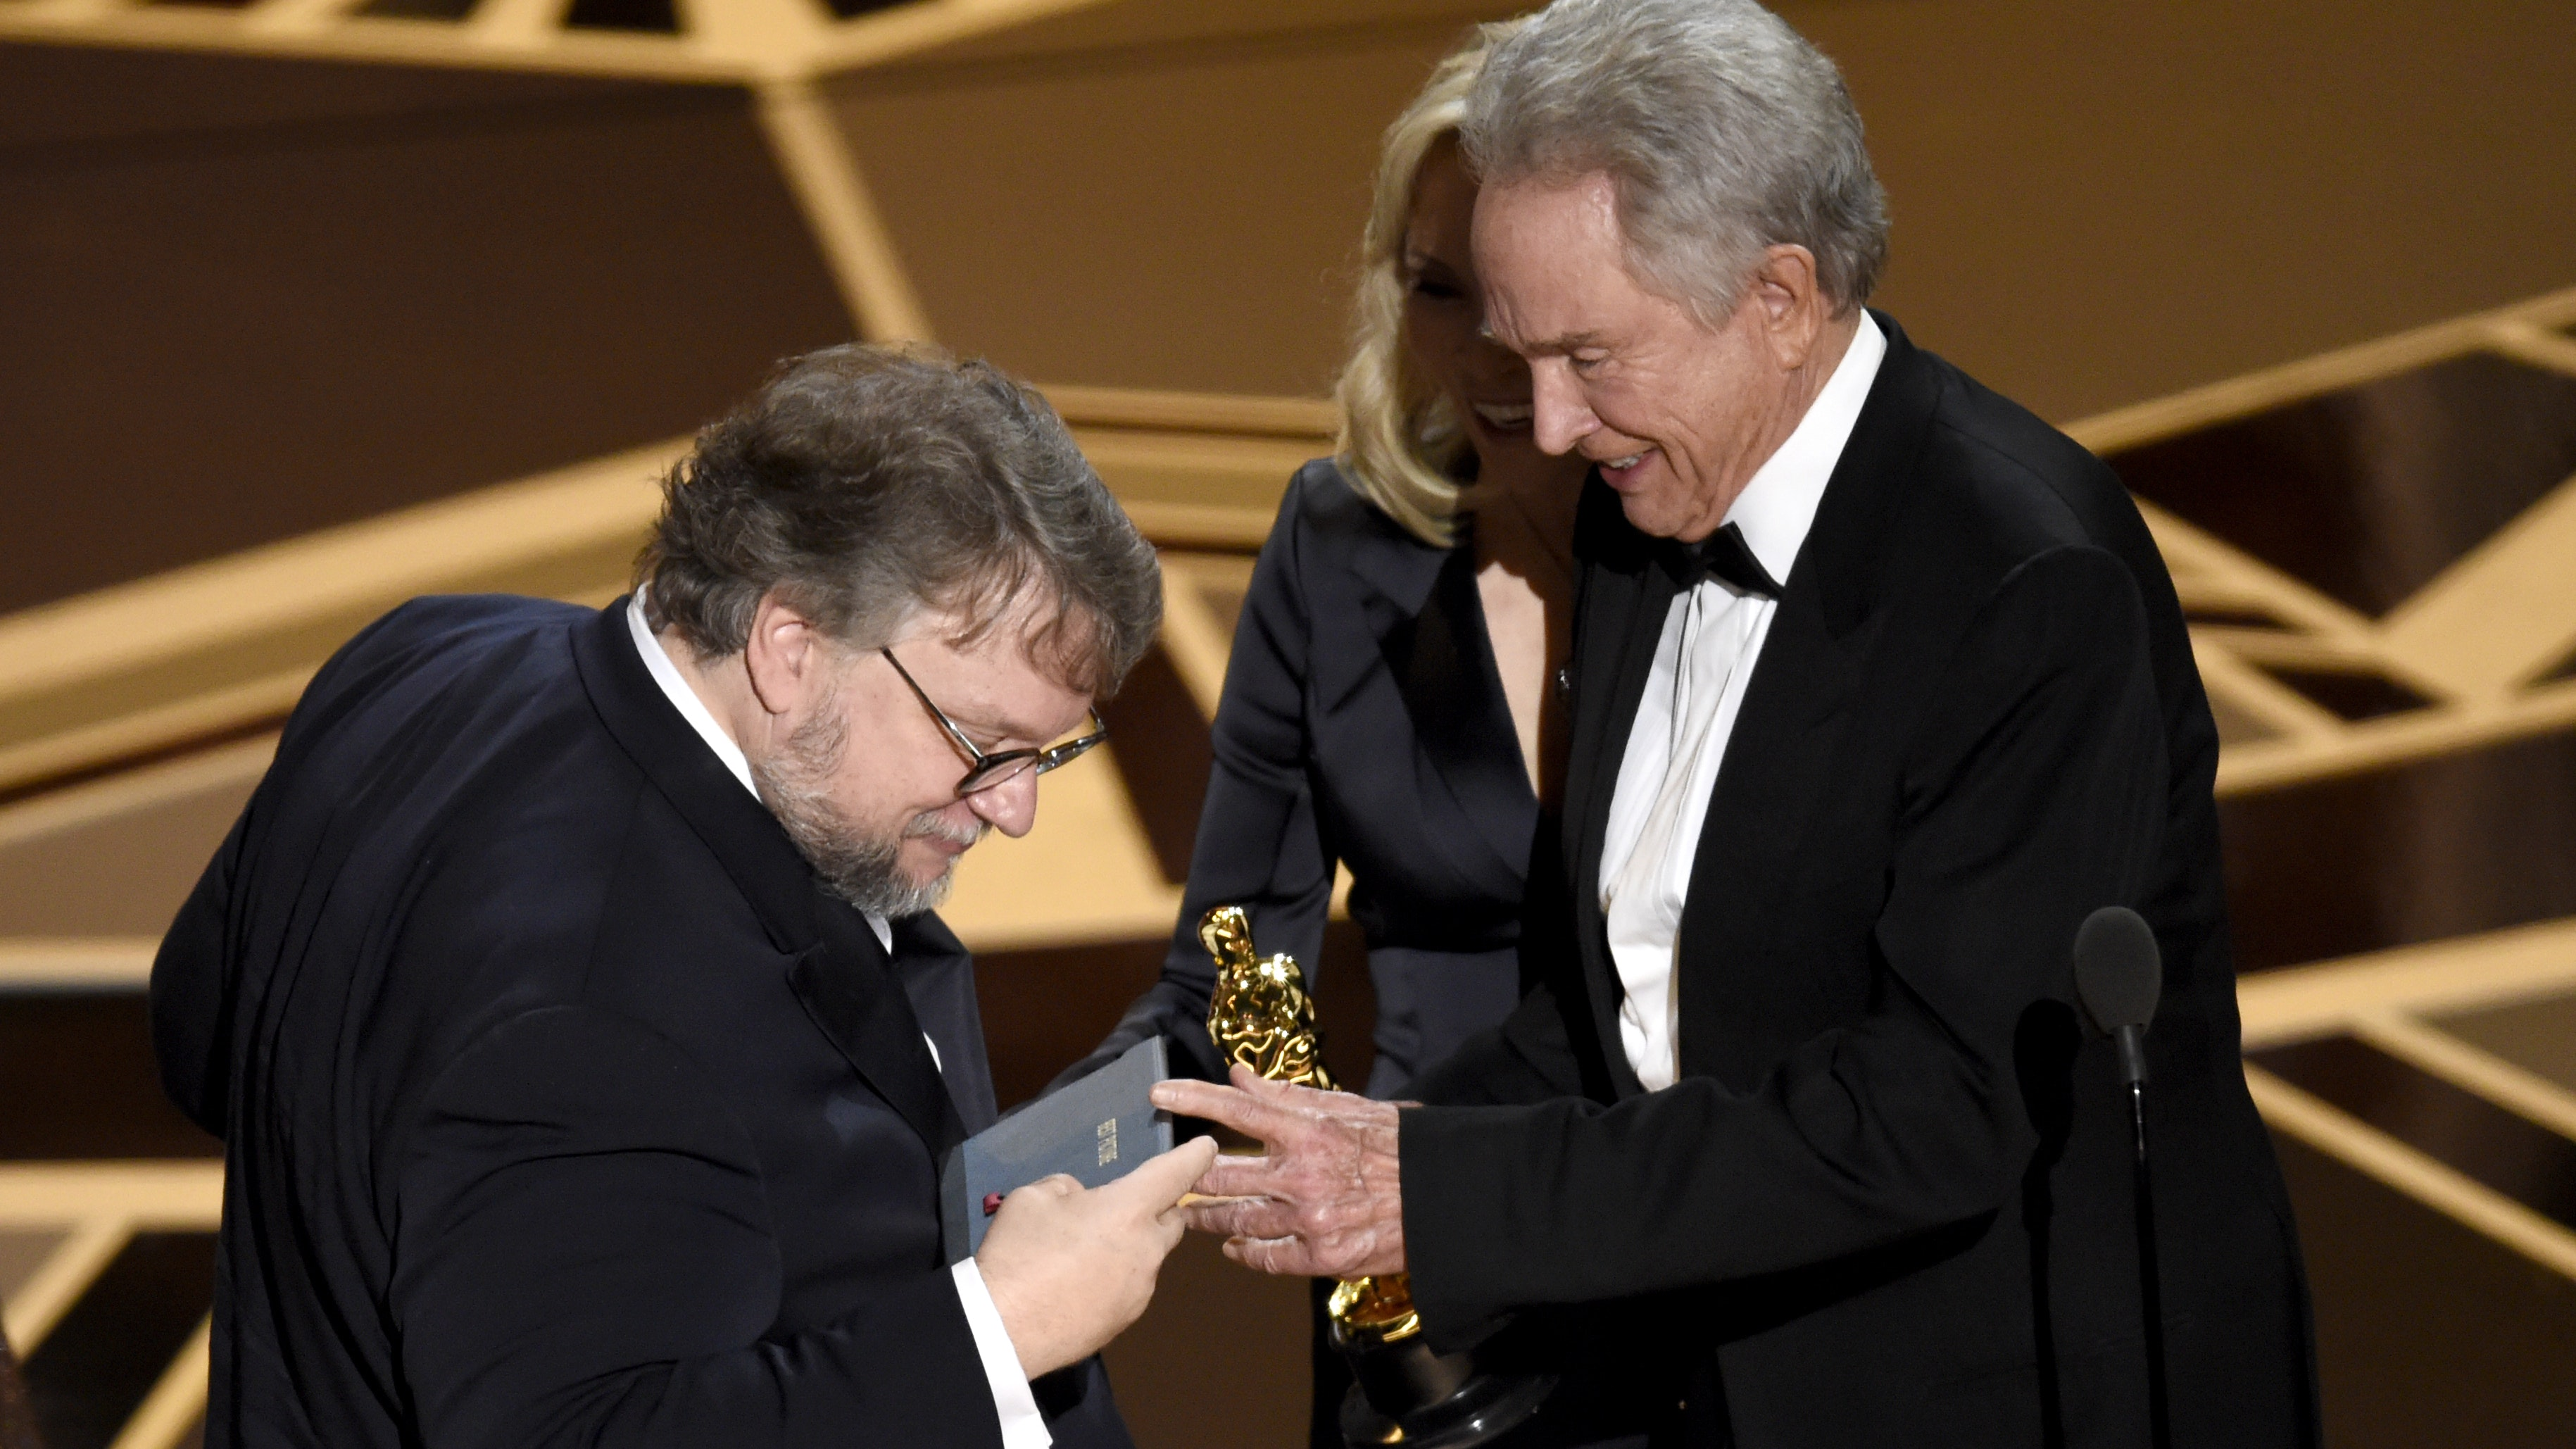 Guillermo del Toro Wins First Oscar, Champions Erasing 'Line in the Sand'